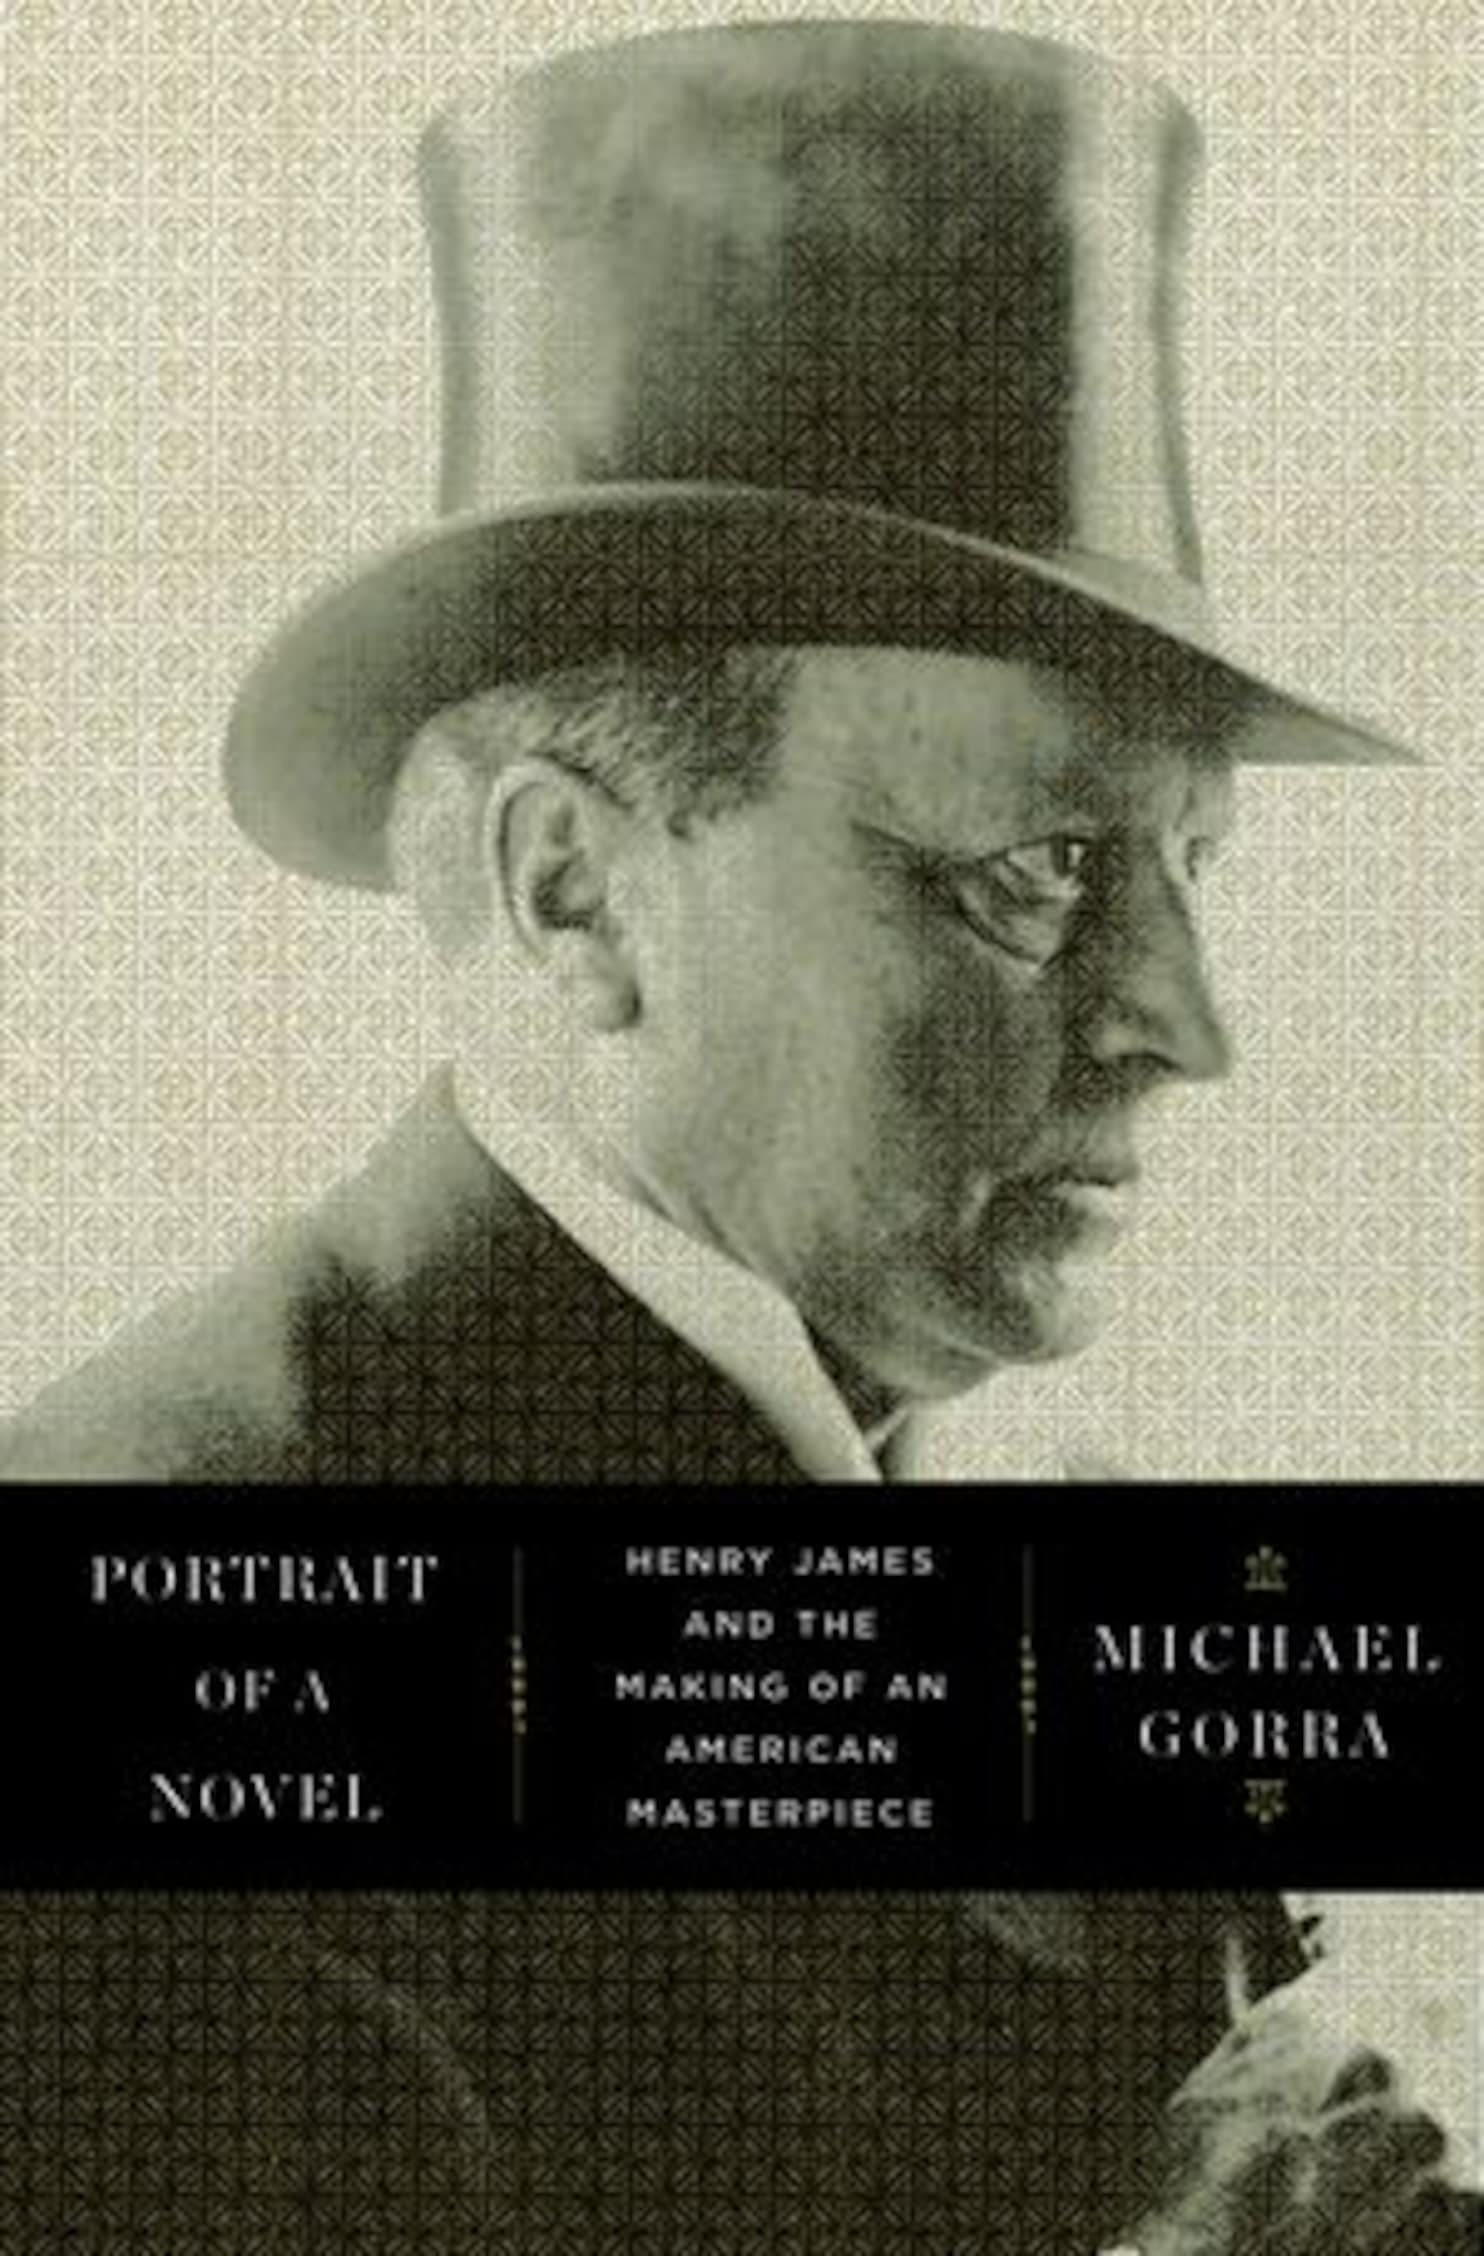 Henry James Portrait Of A Novel Looks At Henry James And The Bridge To